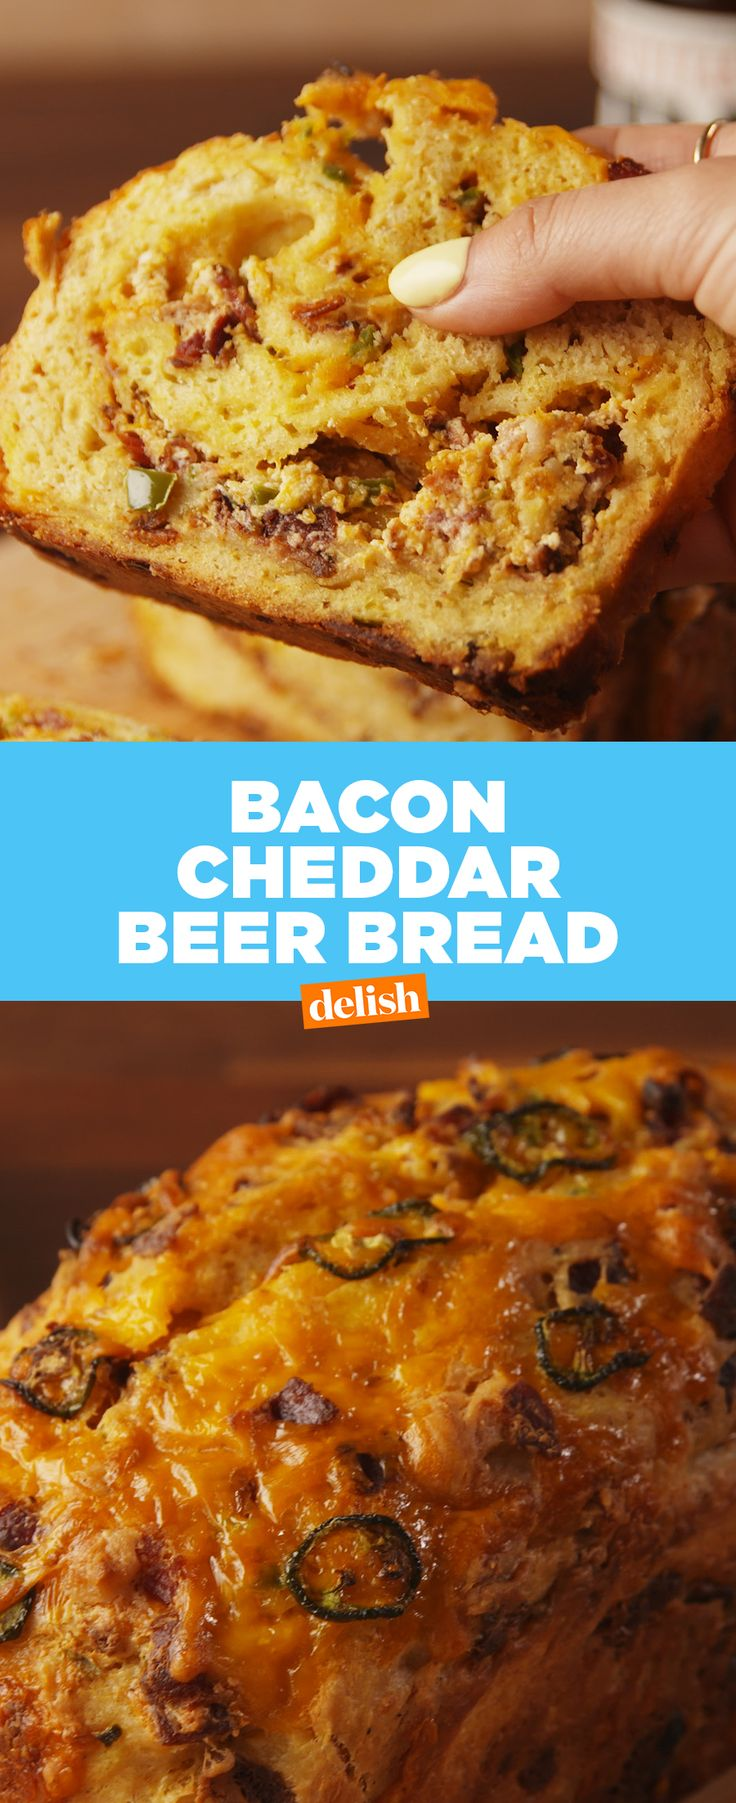 This Bacon Cheddar Beer Bread will be gone before it even cools off. Get the recipe from Delish.com.